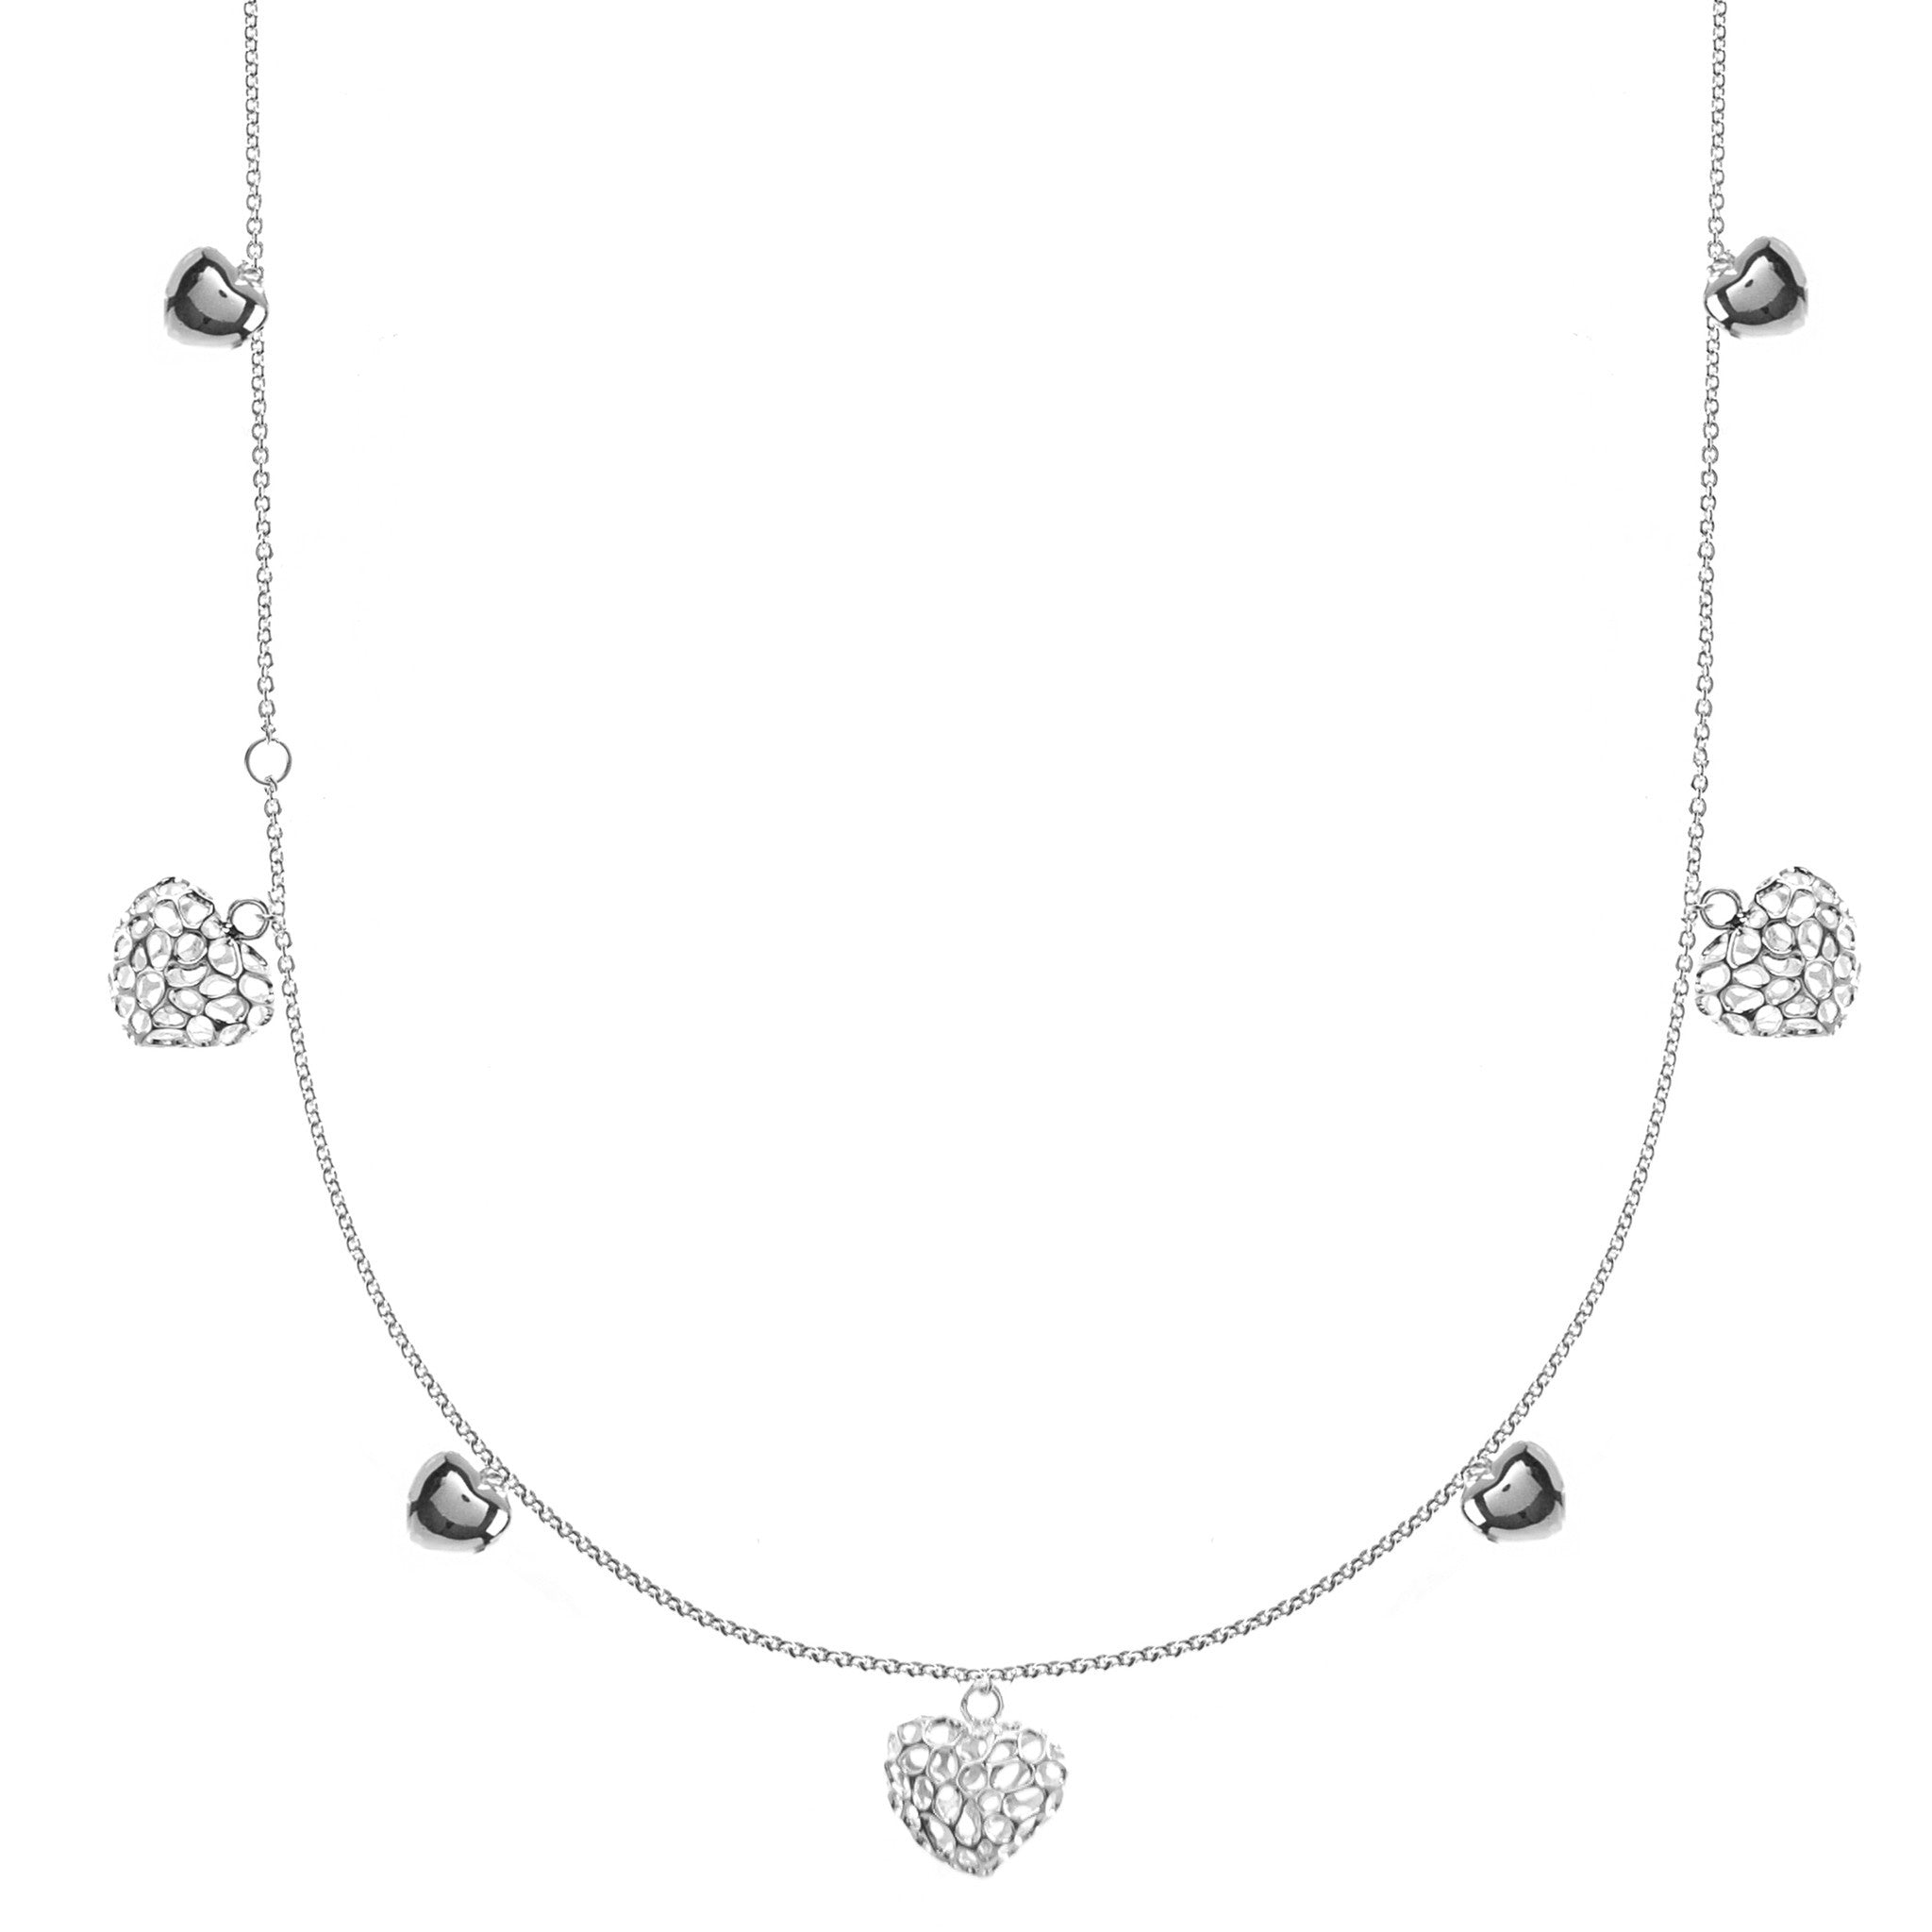 Rachel Galley Necklace Amore Charm chain Silver